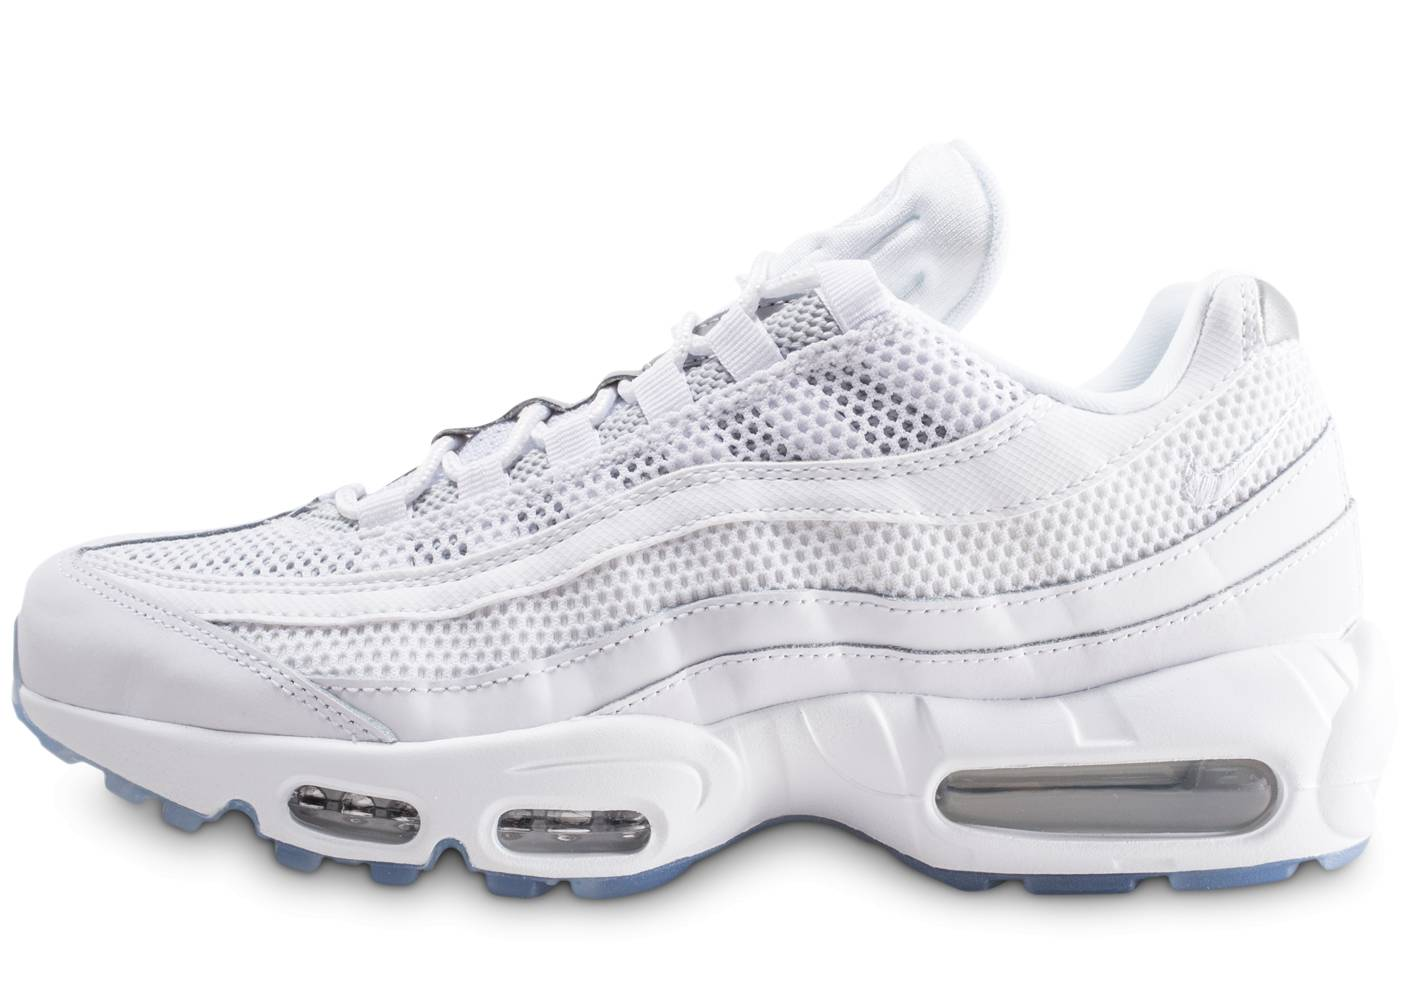 Nike Homme Air Max 95 Essential Blanche Et Argent Baskets 41